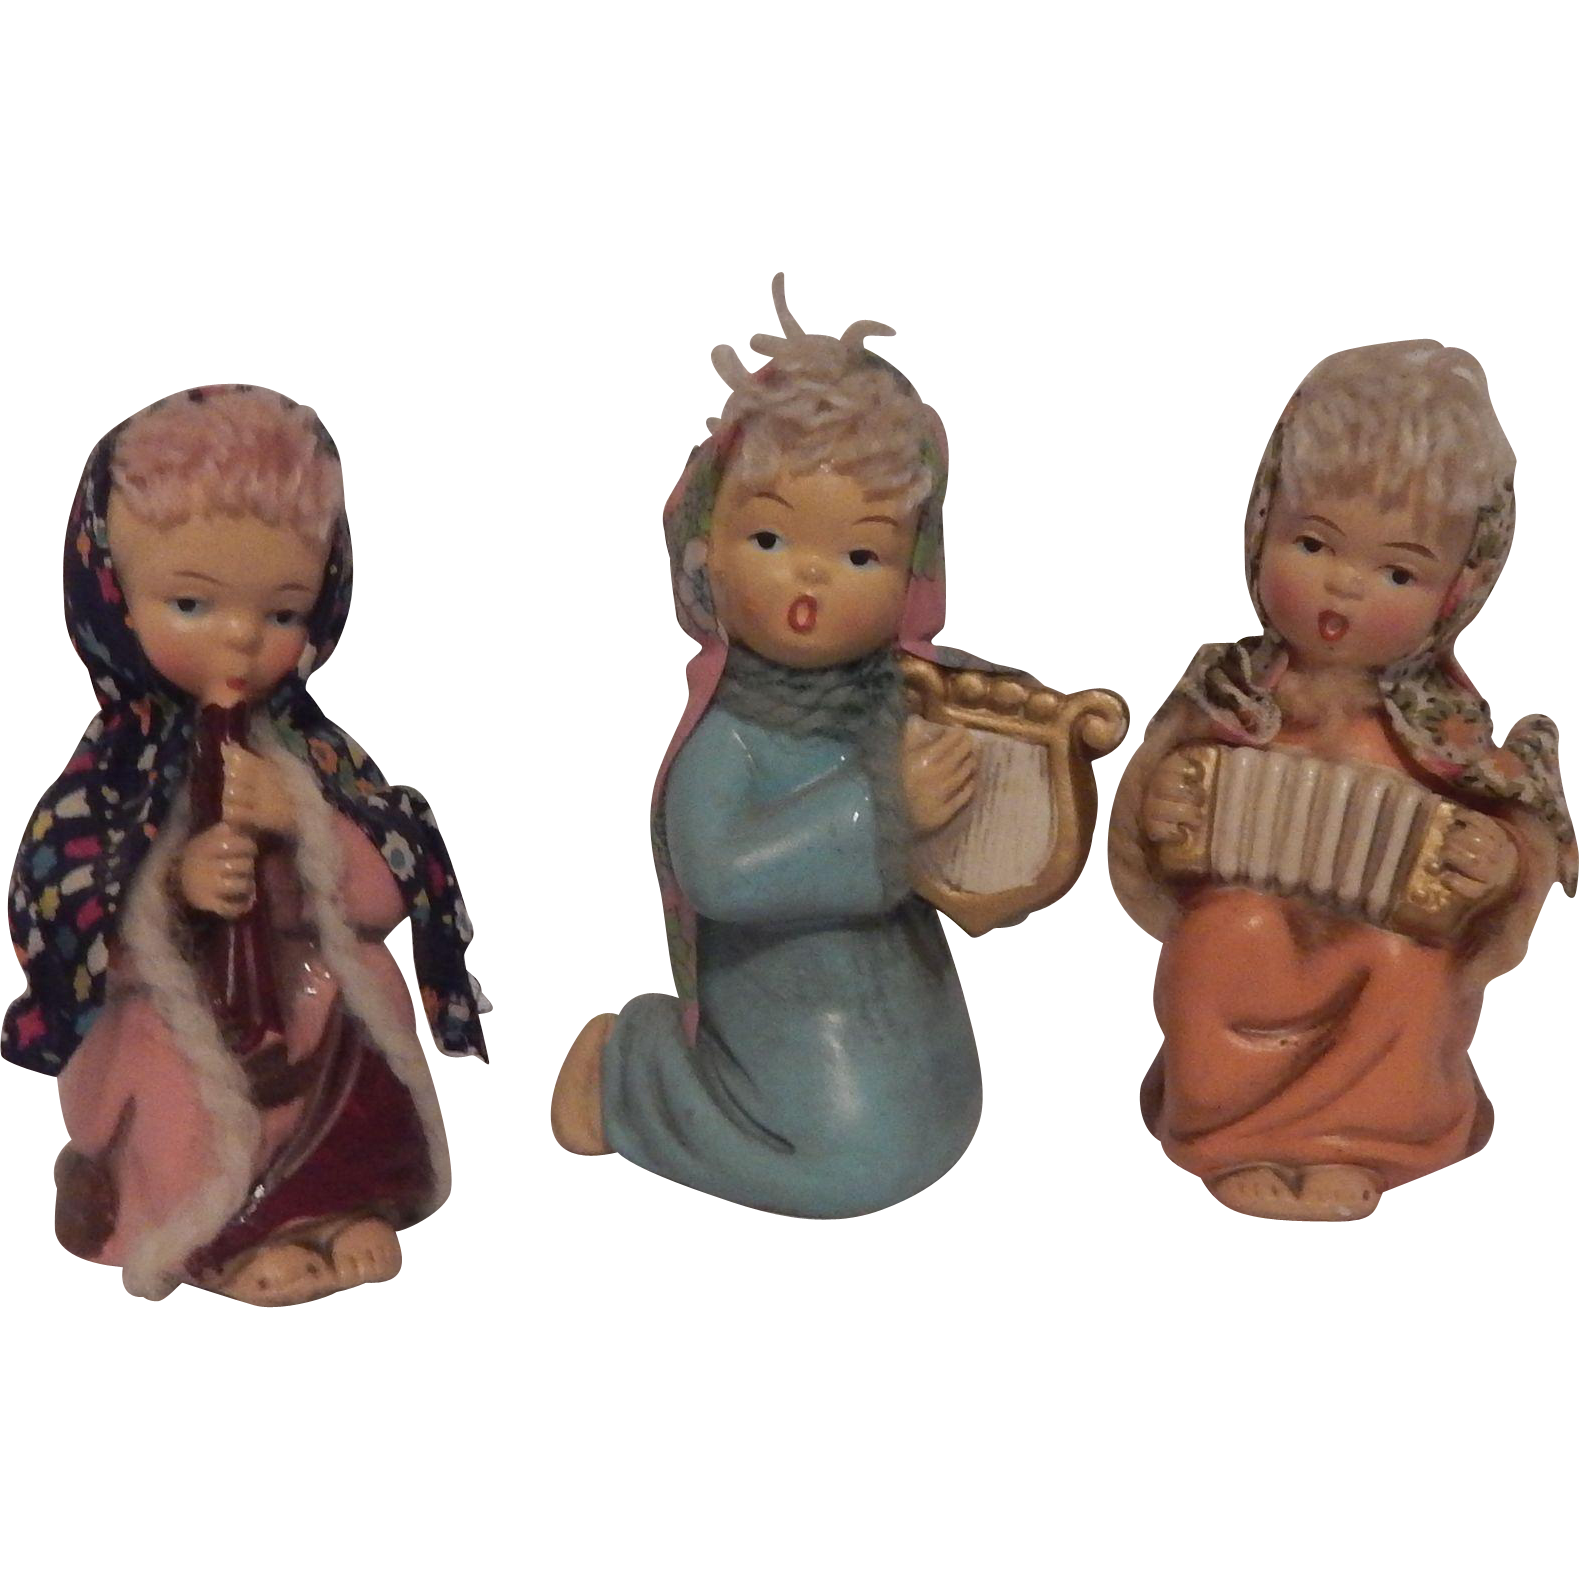 Three Made In Japan Figurines of Girls